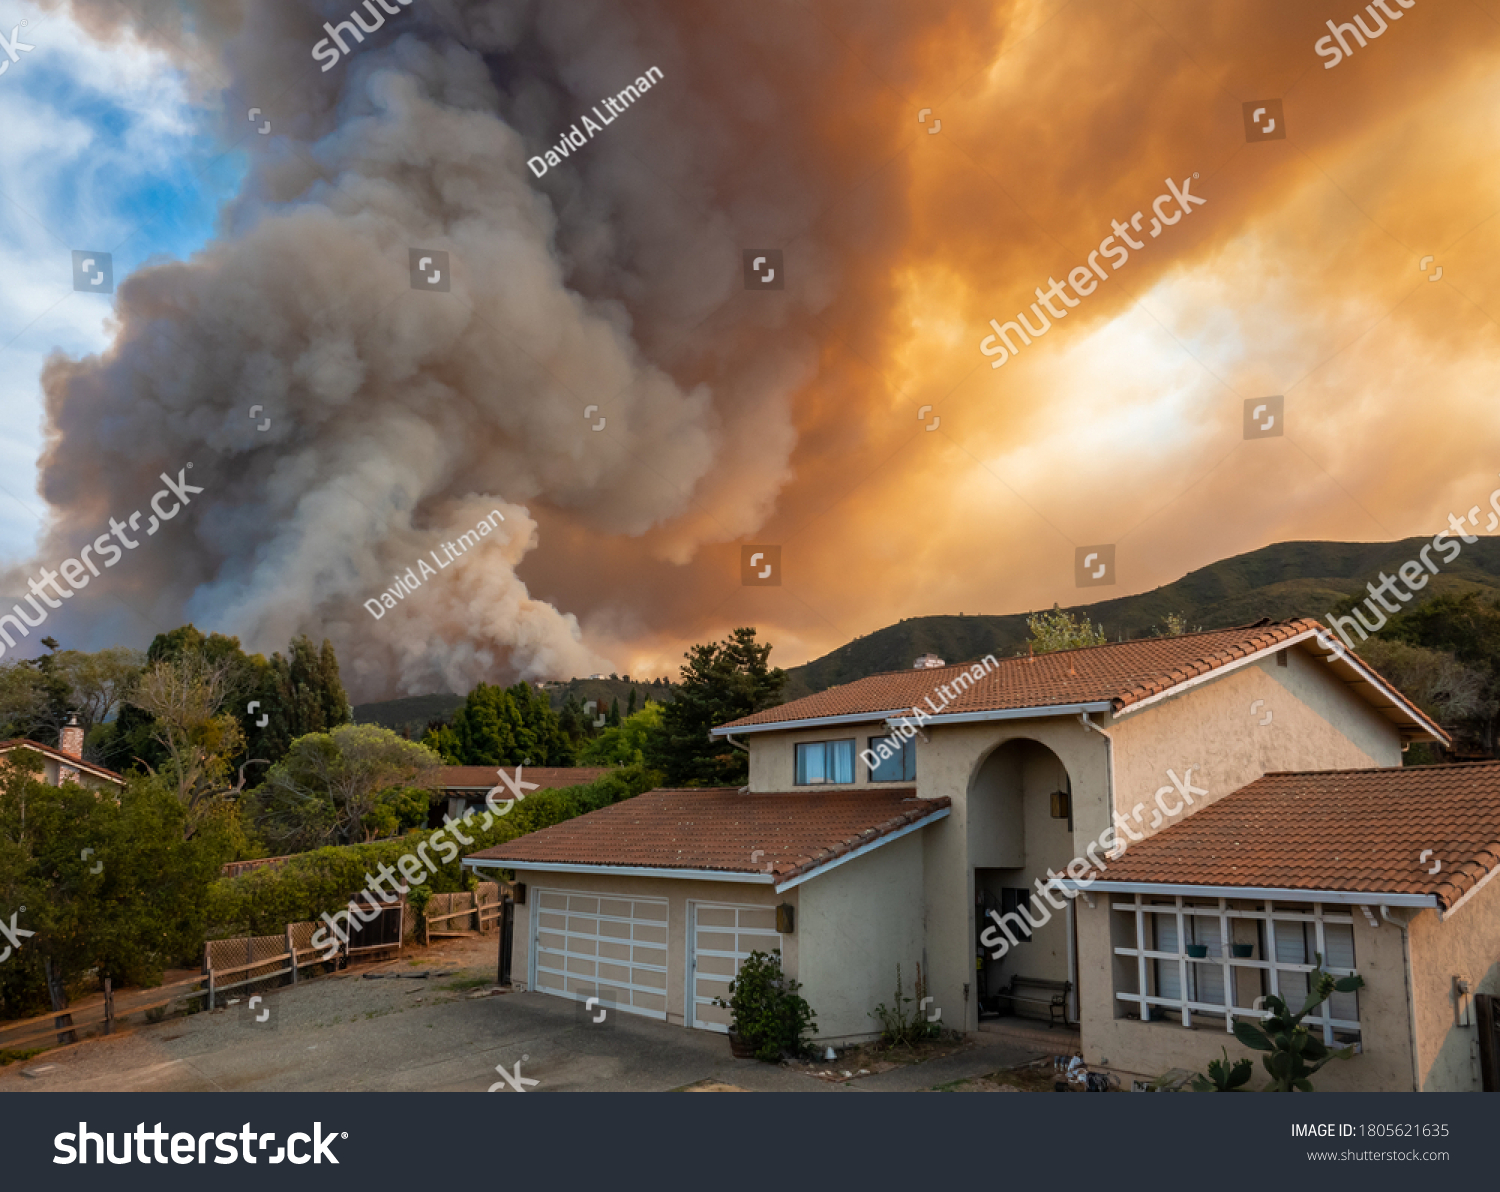 "The California ""River Fire"" of Salinas,  in Monterey County, was ignited by dry lightning on August 16, 2020, fills the sky with dark smoke and flames as it burns close to a houses on its first day."